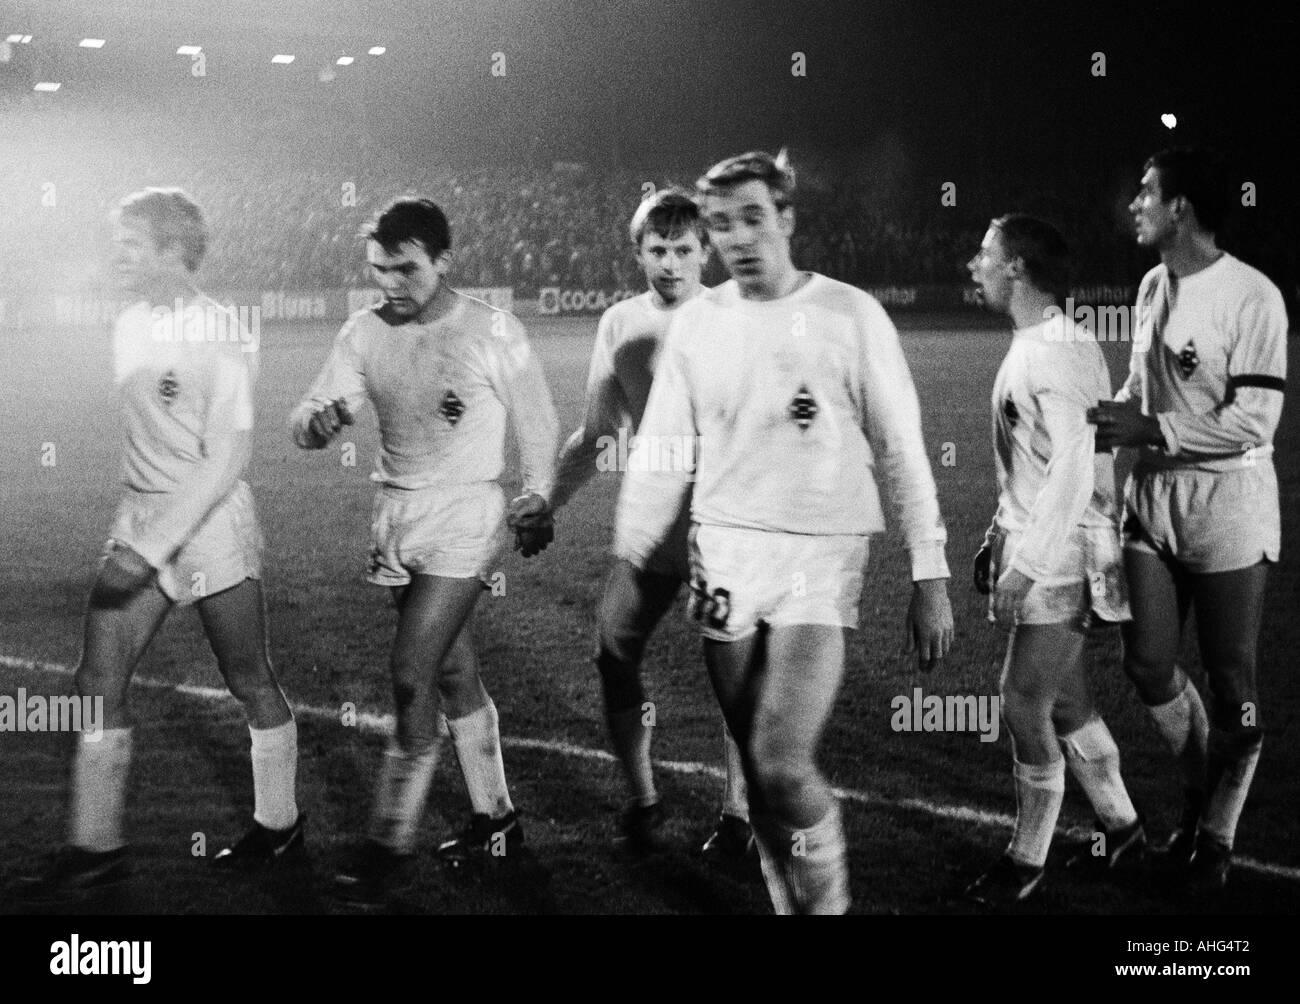 football, Bundesliga, 1967/1968, Muengersdorfer Stadium in Cologne, 1. FC Cologne versus Borussia Moenchengladbach 2:5, football players leaving the pitch, f.l.t.r. Rudolf Poeggeler, Herbert Laumen, Klaus Ackermann, Guenter Netzer, Berti Vogts, Egon Milde - Stock Image